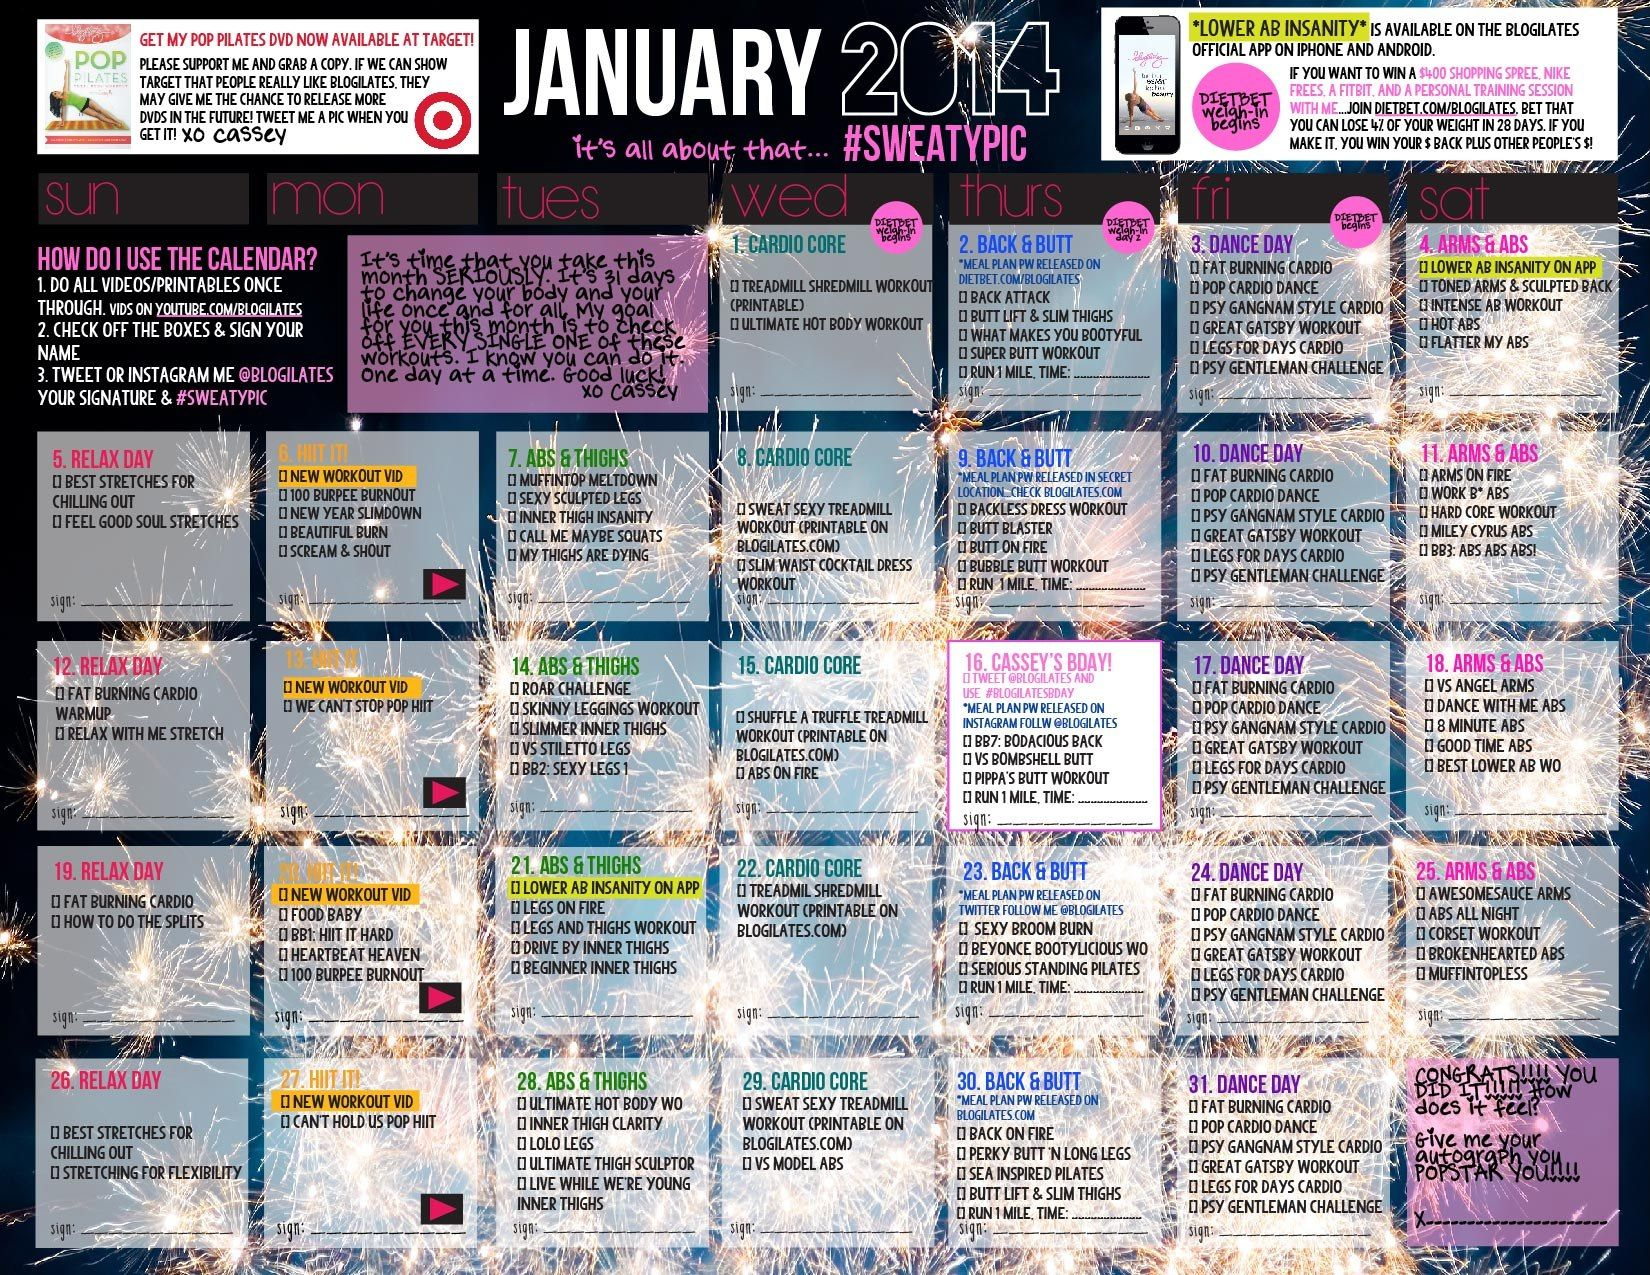 Ilates Monthly Calendar Results : Your official january workout calendar is here